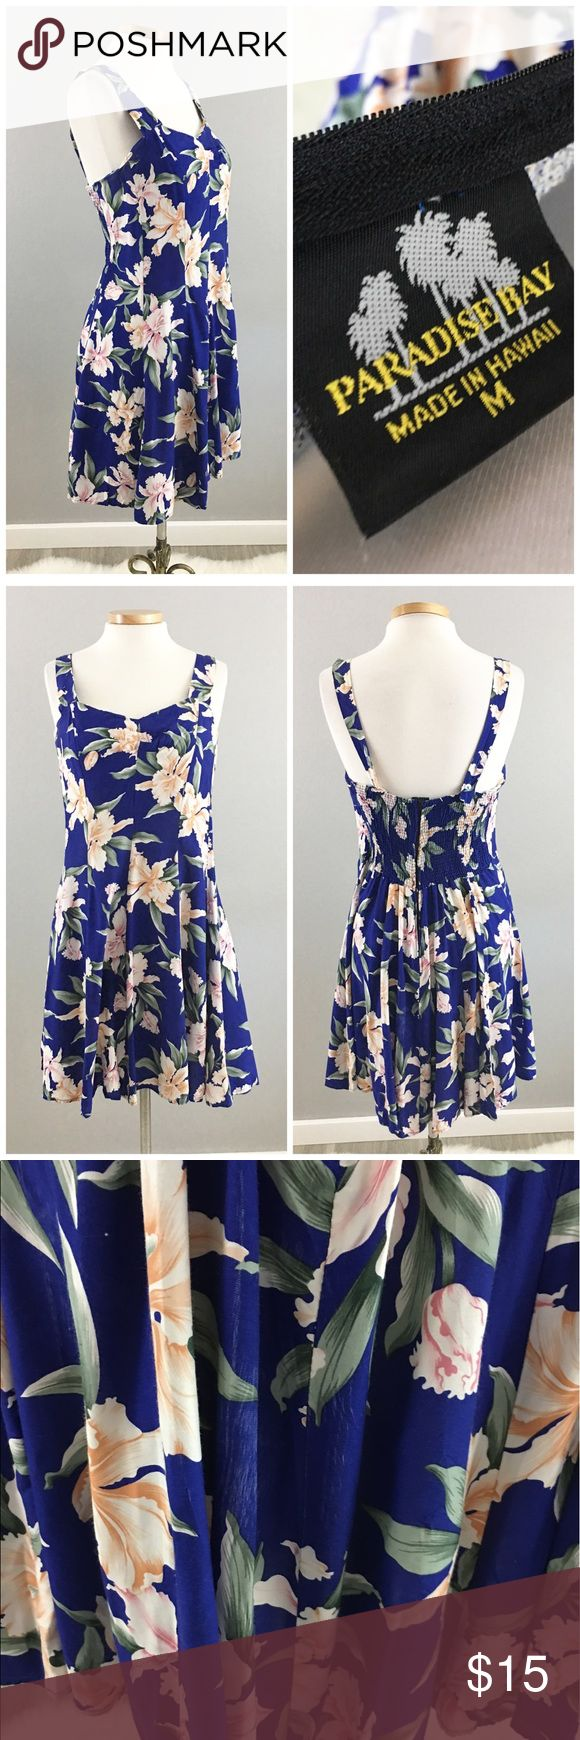 Paradise Royal Blue Hawaiian Print Summer Dress Paradise Royal Blue Hawaiian Print Summer Dress. Size medium with stretch. Dress hits slightly above the knee in length. Thank you for looking at my listing. Please feel free to comment with any questions (no trades/modeling).  •Condition:  VGUC, no hole or stains. There are a couple spots on the dress that look like there is faded lines. Could be colored in with a fabric color. (Pictured).   25% off all Bundles or 3+ items! Reasonable offers…